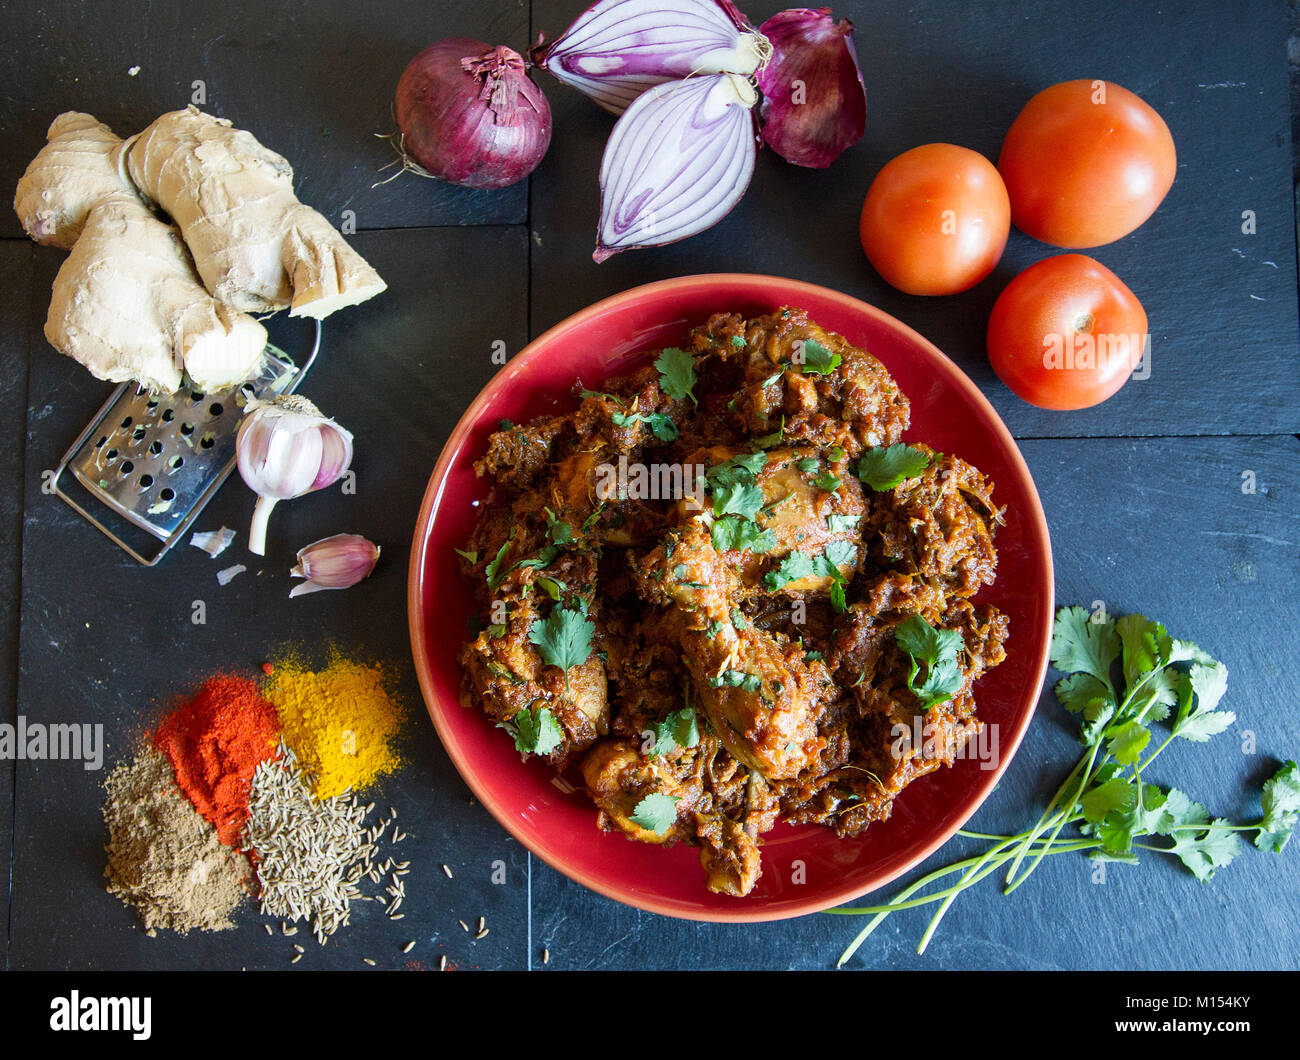 Food photography: Chicken Daag mein murgh recipe, - Stock Image